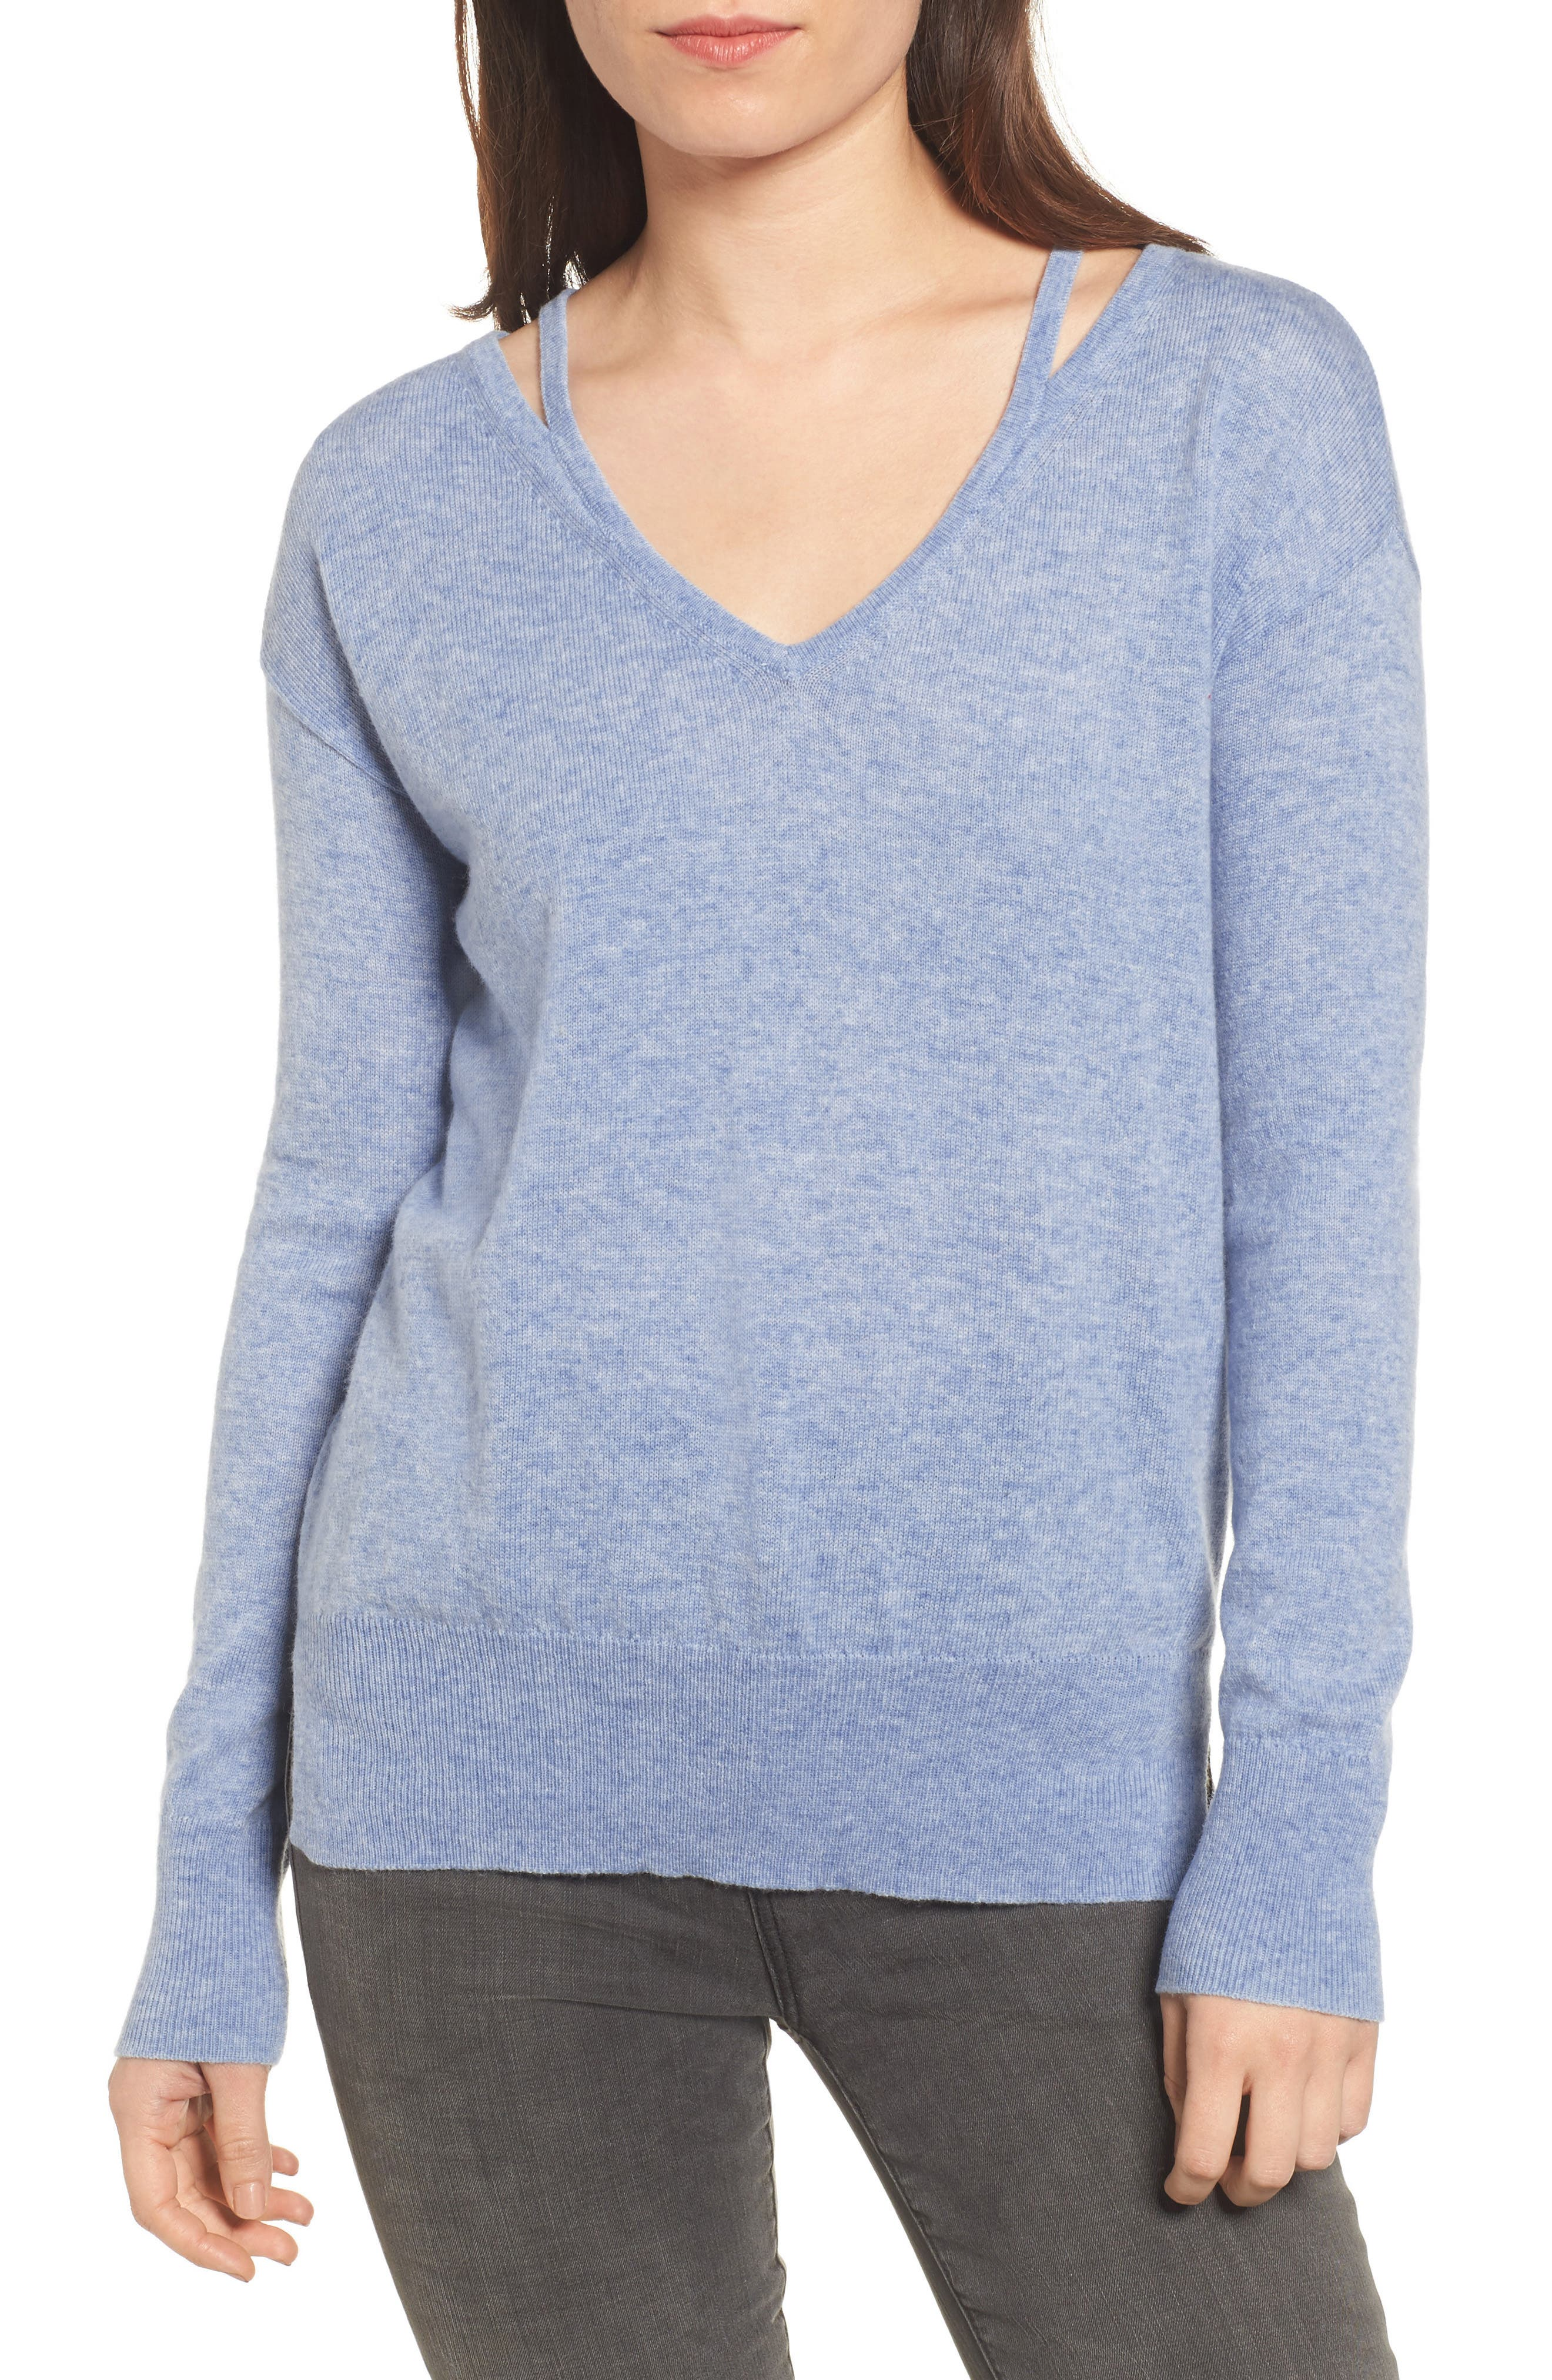 Kenley Wool & Cashmere Sweater,                             Main thumbnail 1, color,                             400